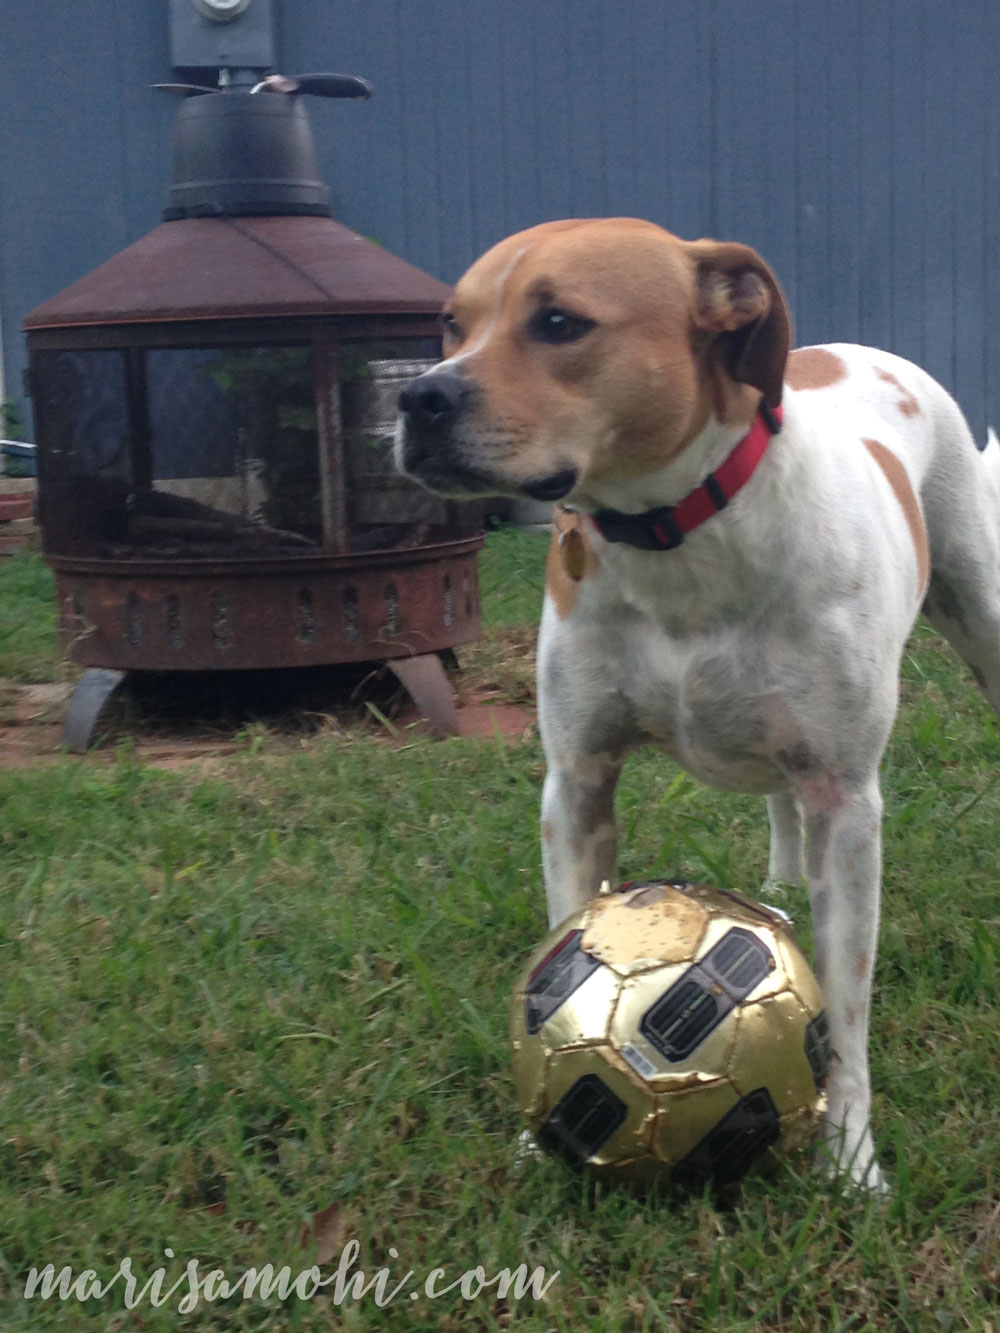 Rosie the pit bull and her soccer ball